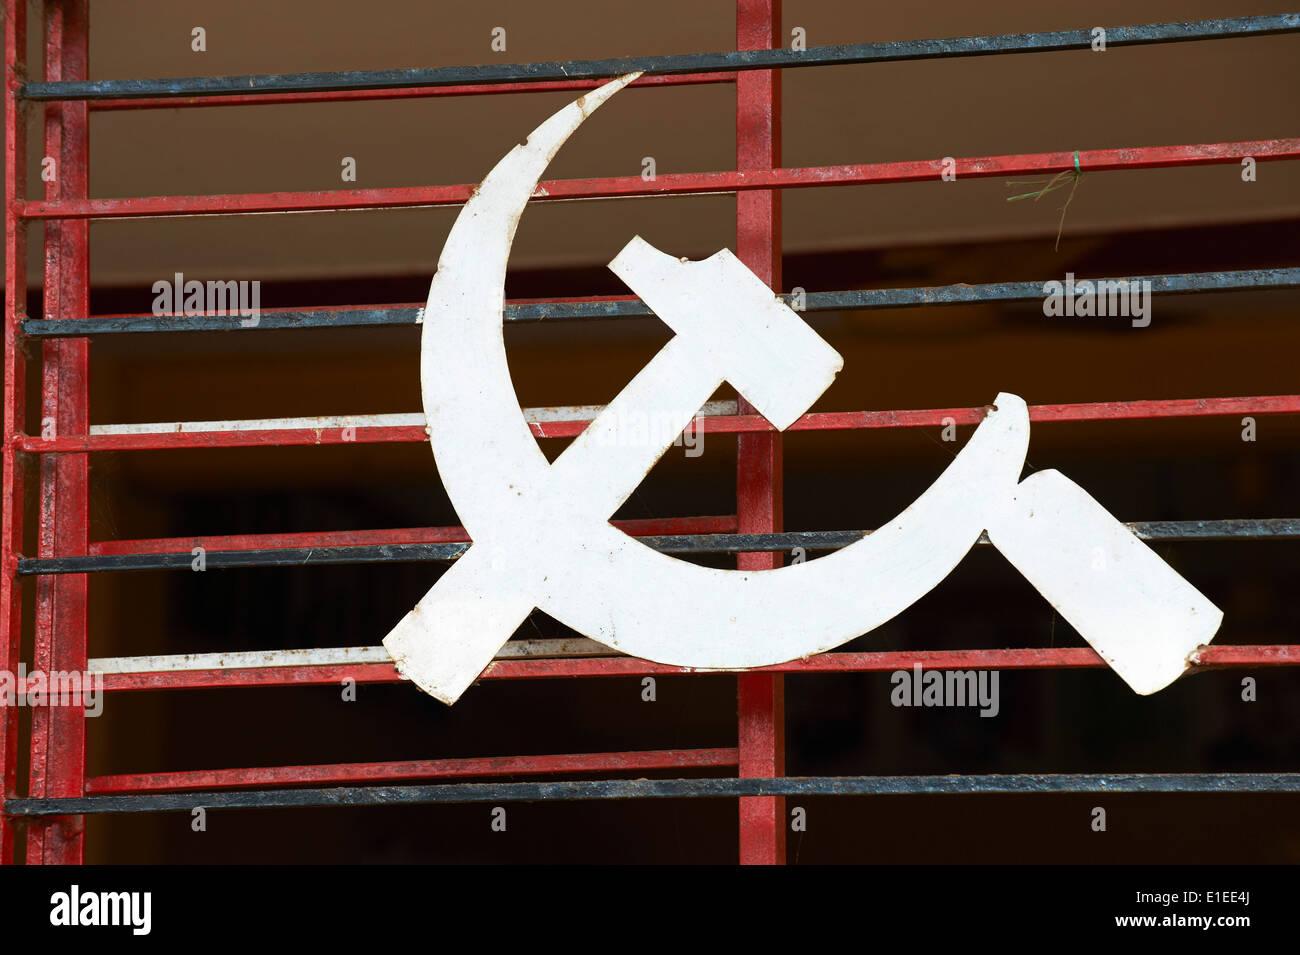 Communism Symbol Stock Photos Communism Symbol Stock Images Alamy